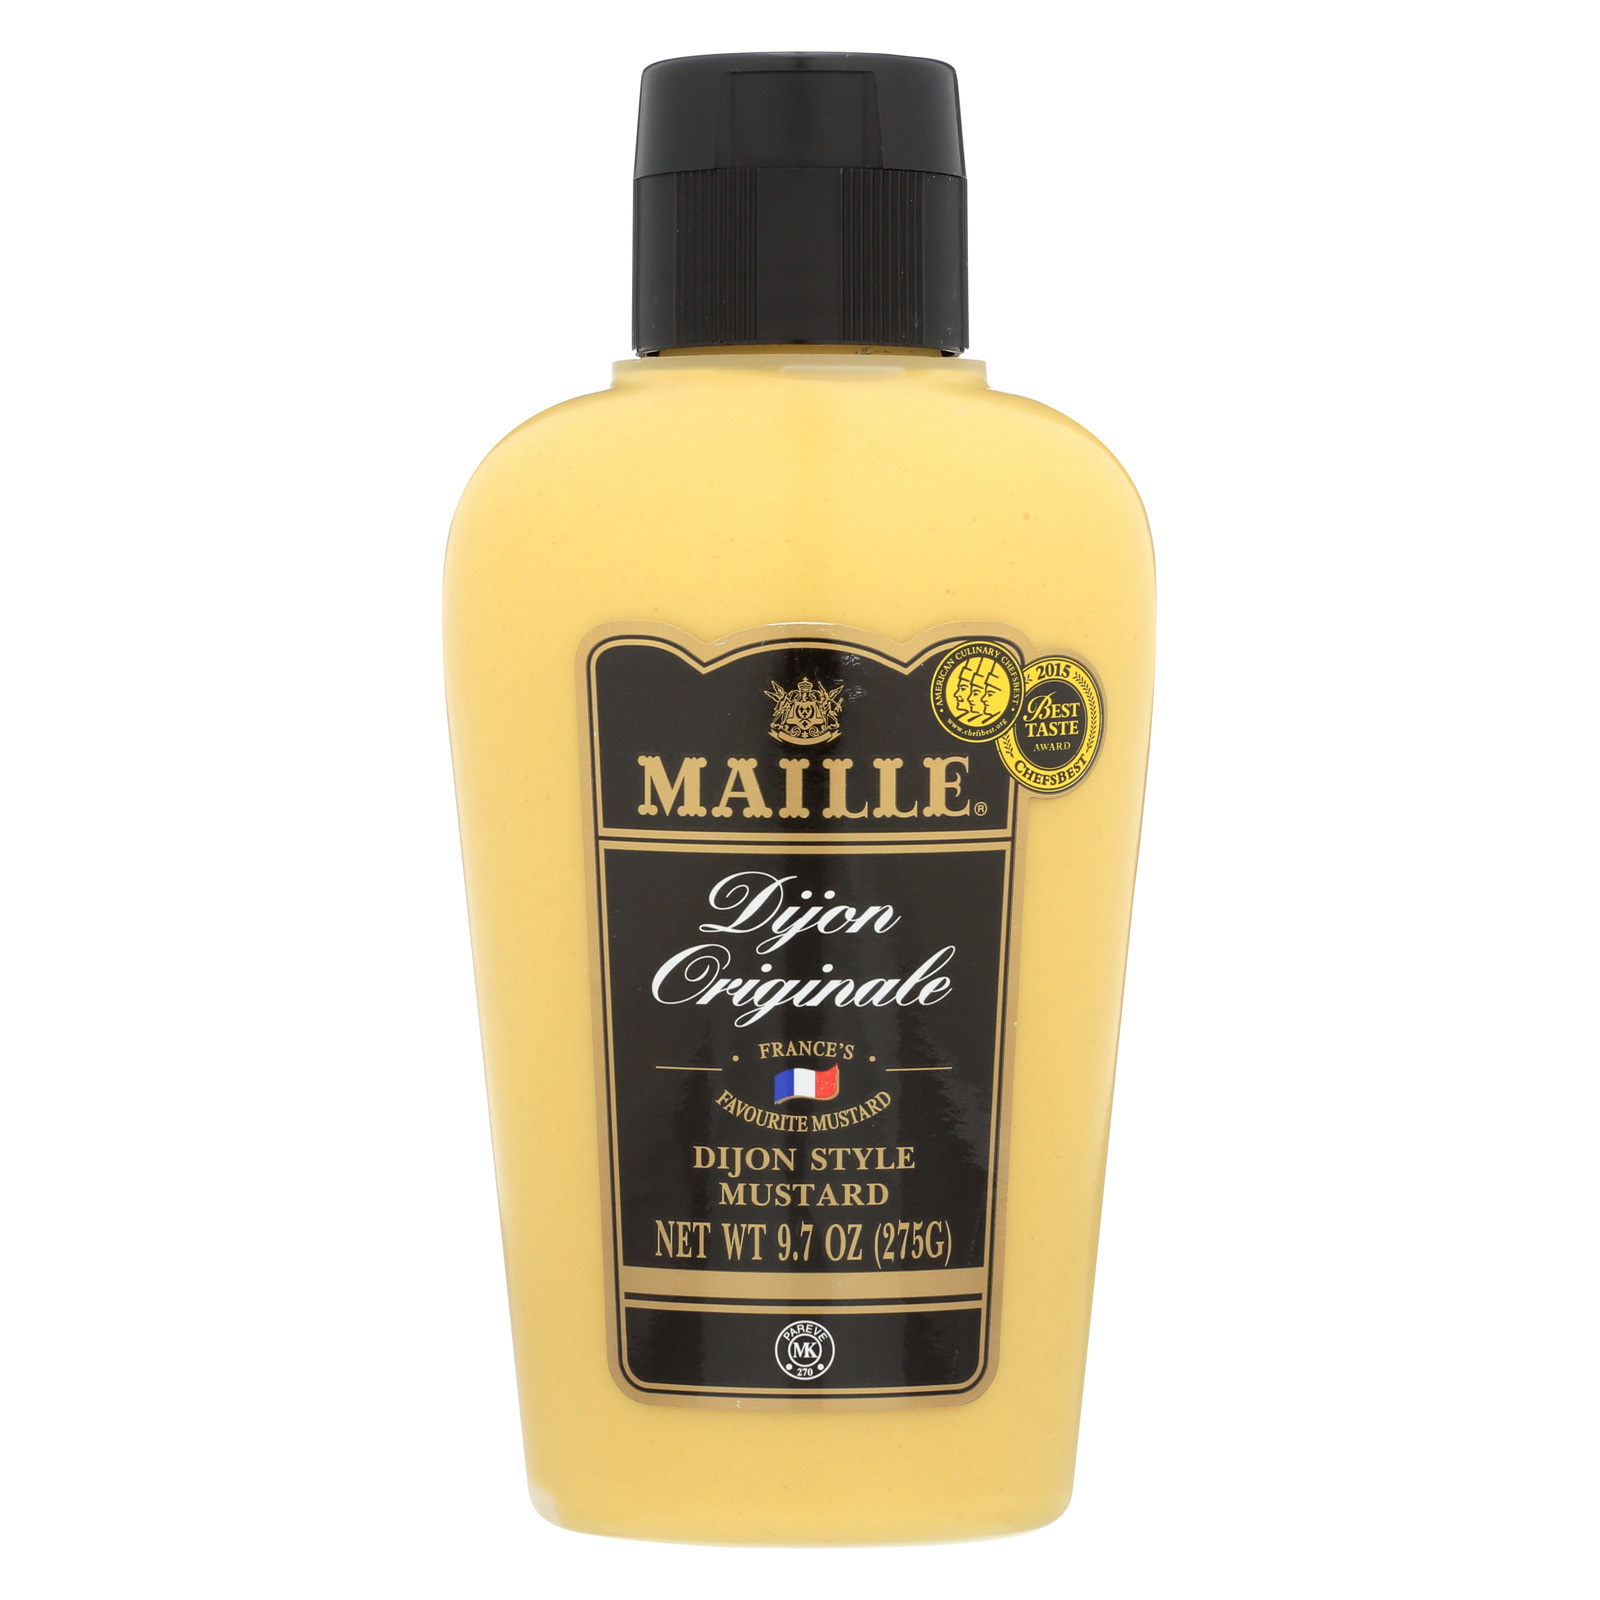 Maille Original Dijon Style Mustard - Case of 12 - 9.7 oz.